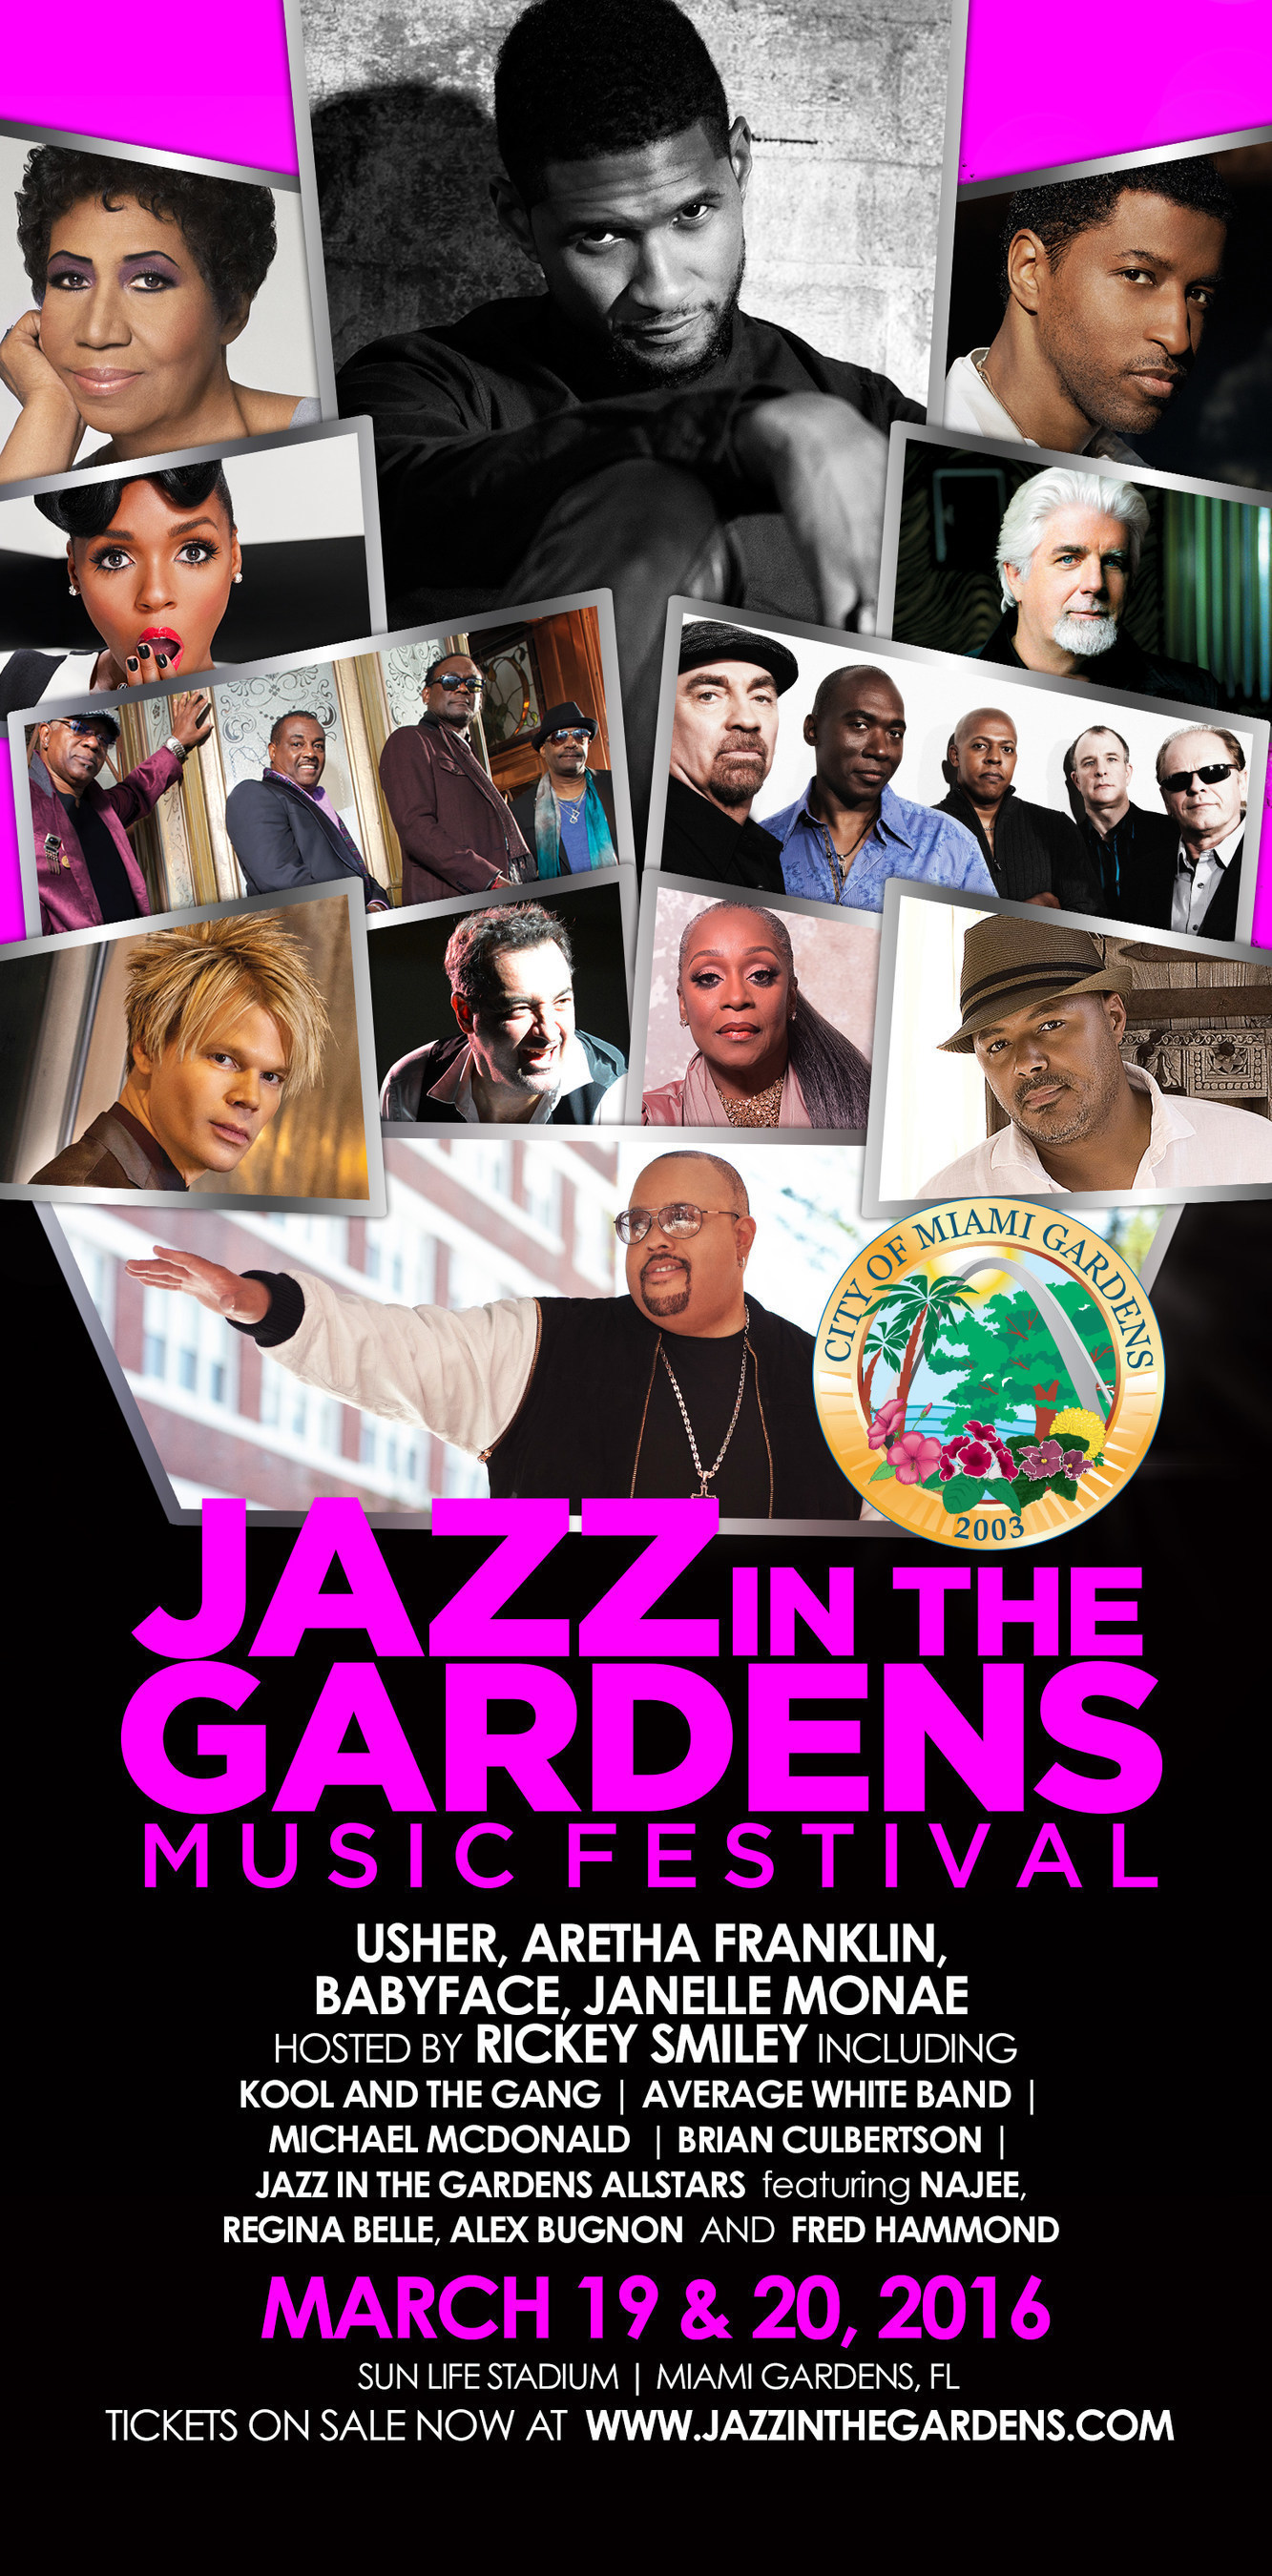 Usher And Aretha Franklin Headline The 11th Annual Jazz In The Gardens  Music Festival.